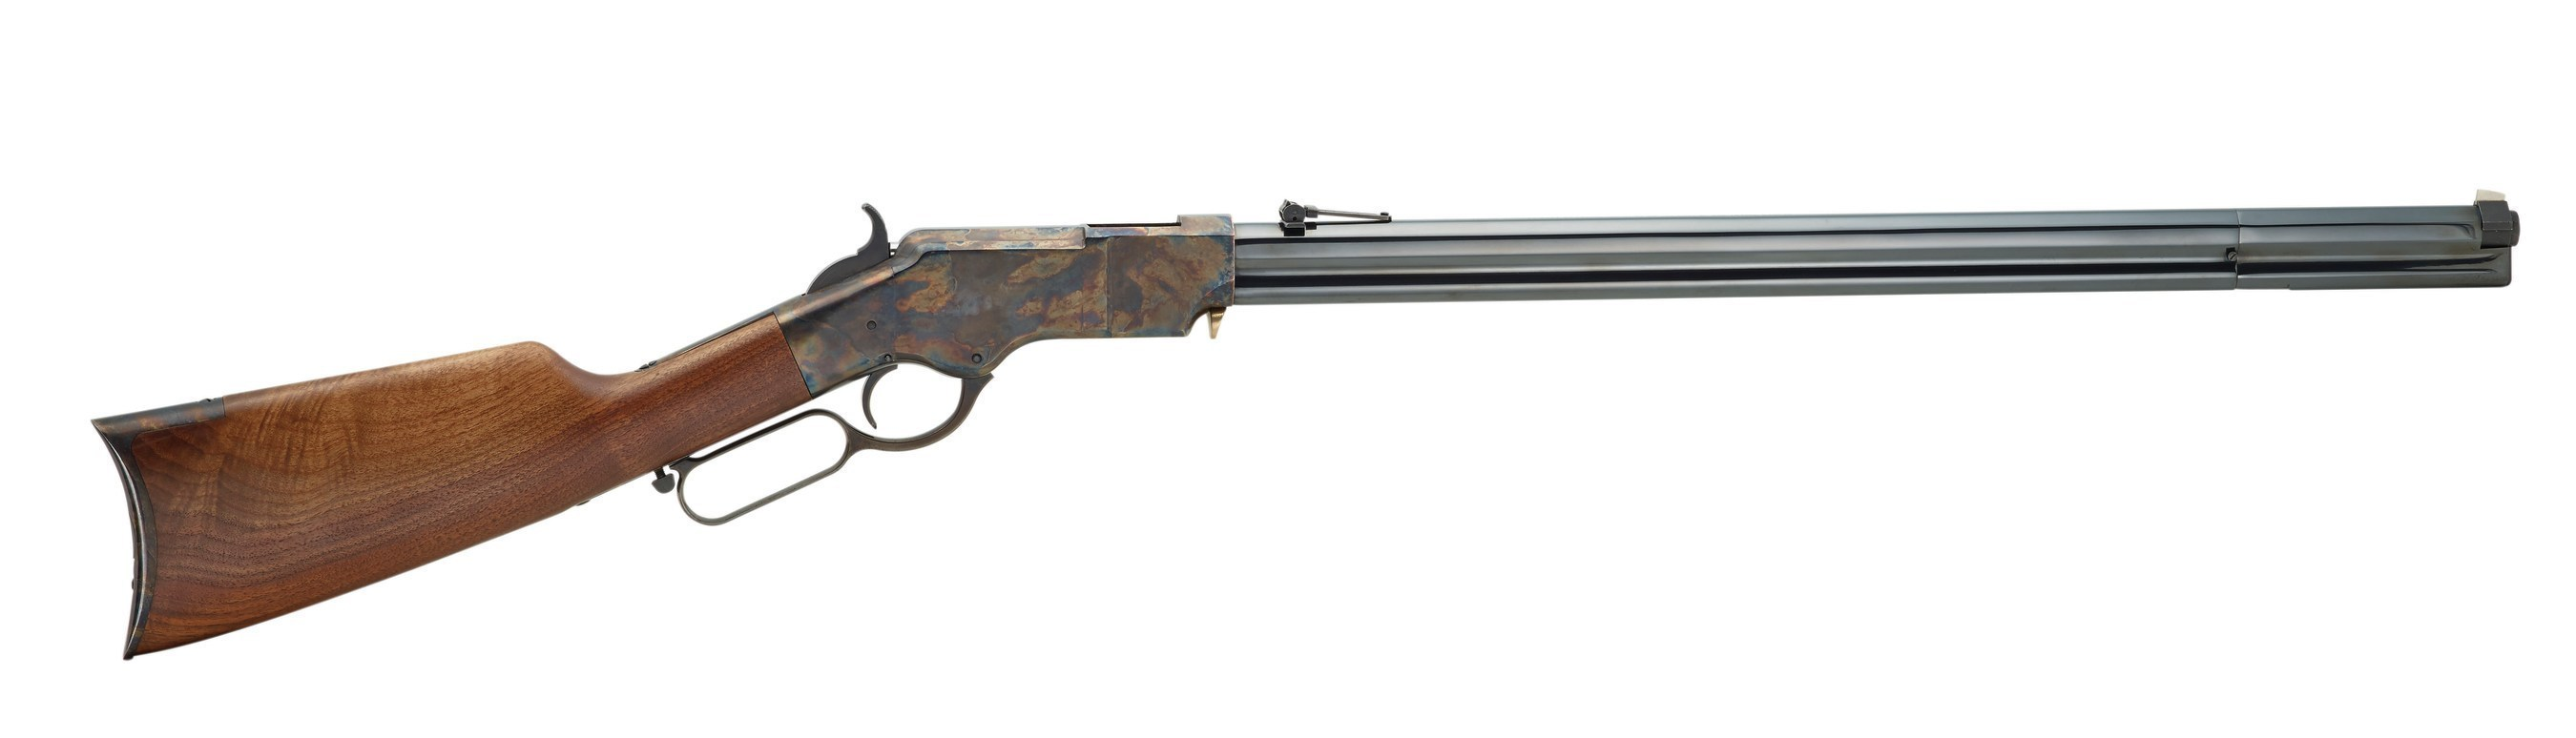 Henry Repeating Arms Donates New Iron Framed Original Henry Rifle Serial #1 to NRA Auction -- Bid Now